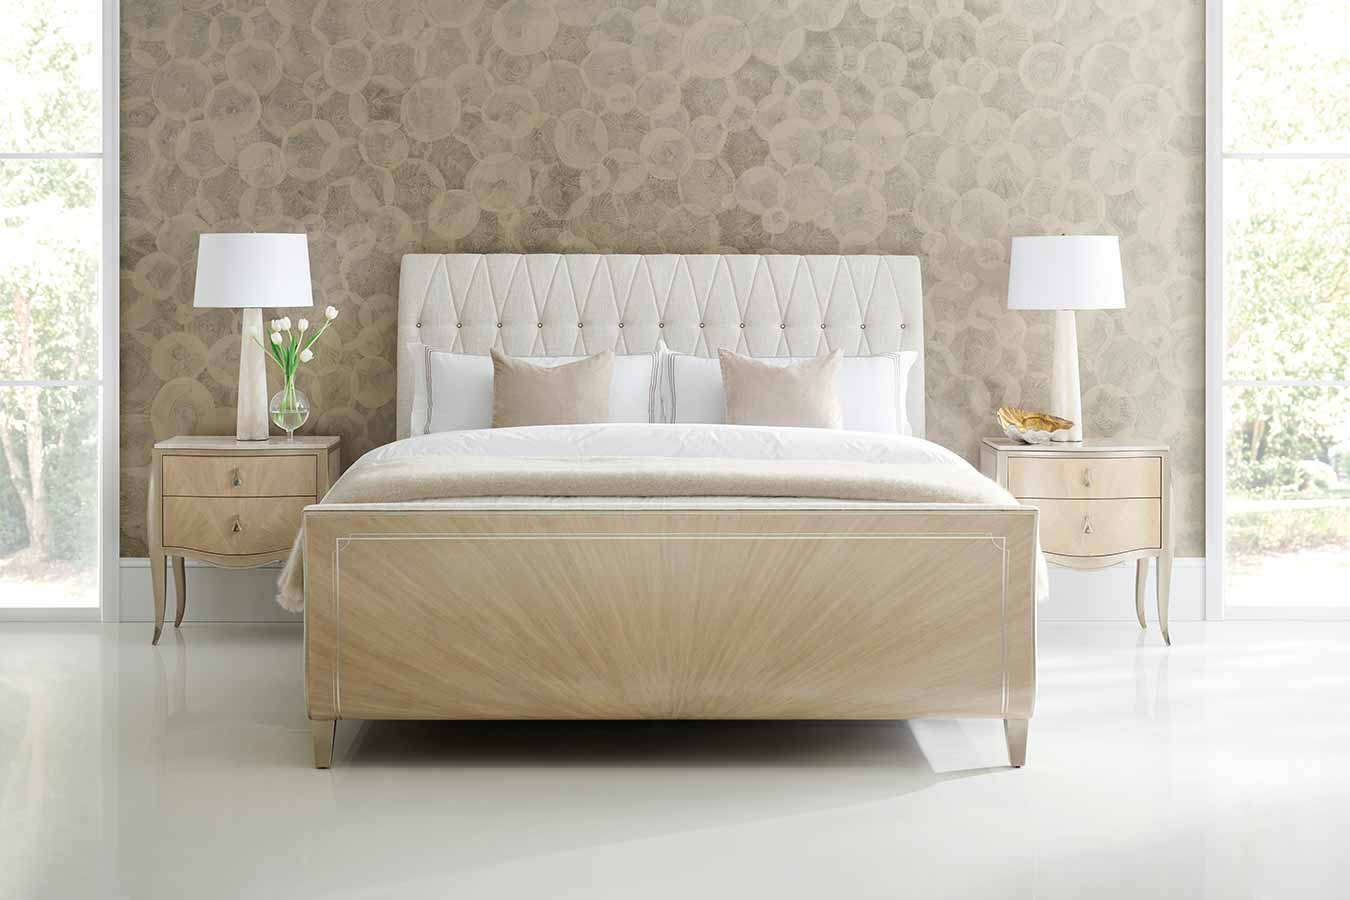 Contemporary Bedroom | Luxury Designer Modern Exclusive Handcrafted Furniture | Sandton